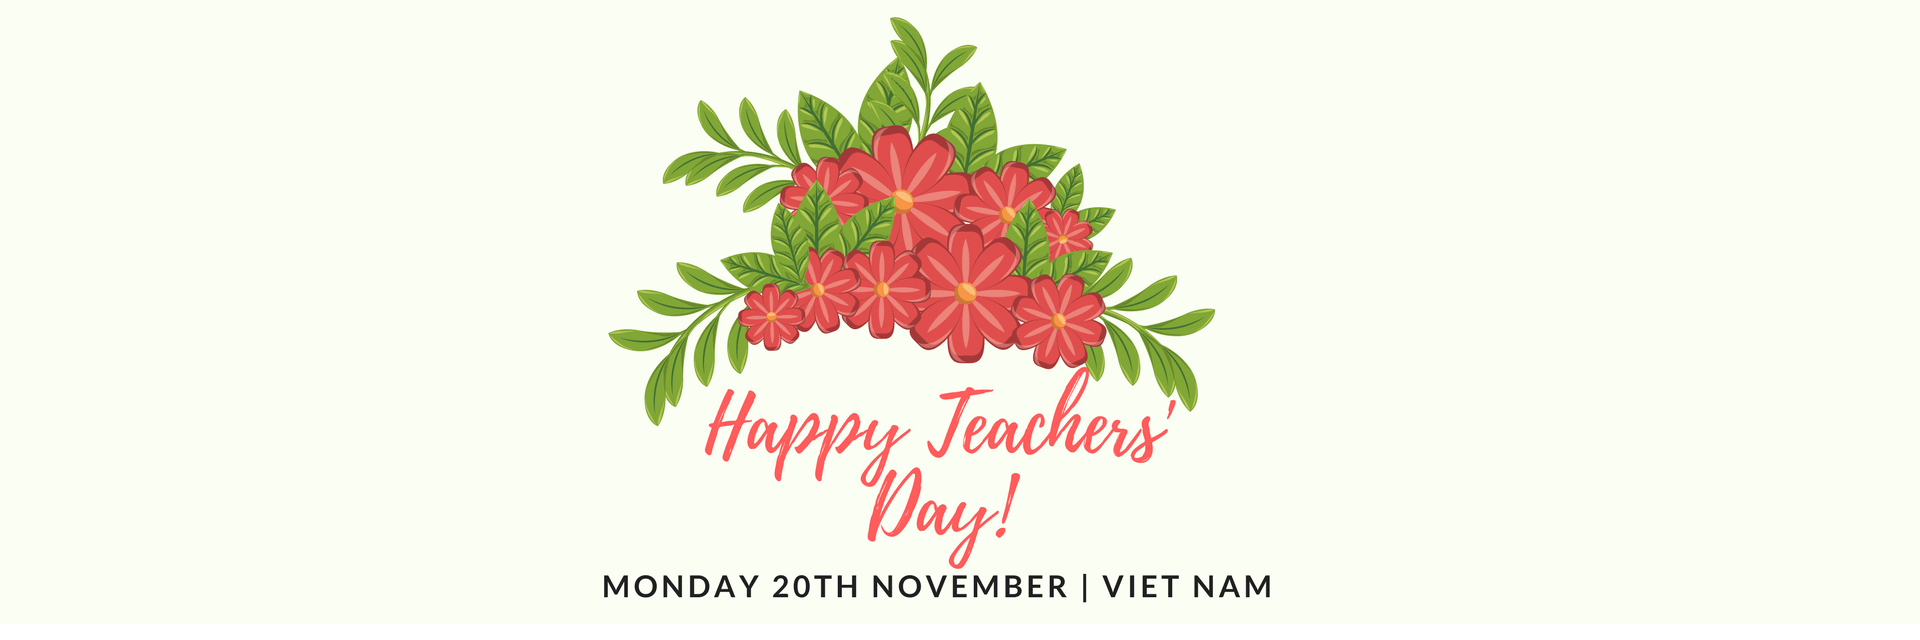 Viet Nam Teachers' Day - In Country Tours